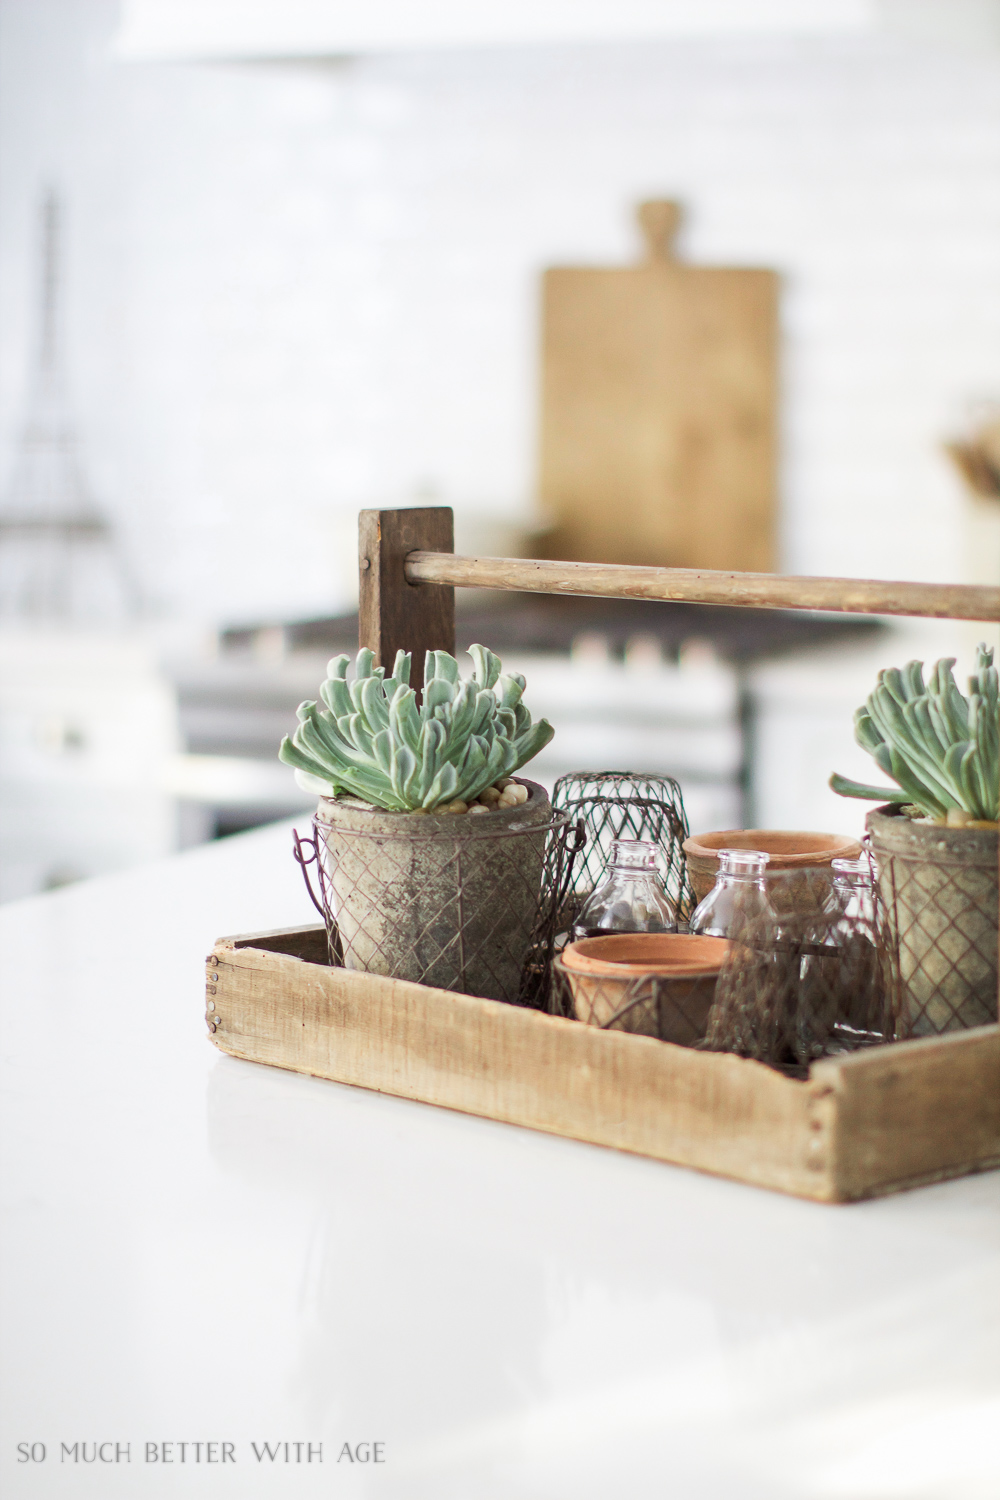 Succulents on kitchen island/ My Big Beautiful Kitchen Renovation - Before and After Photos